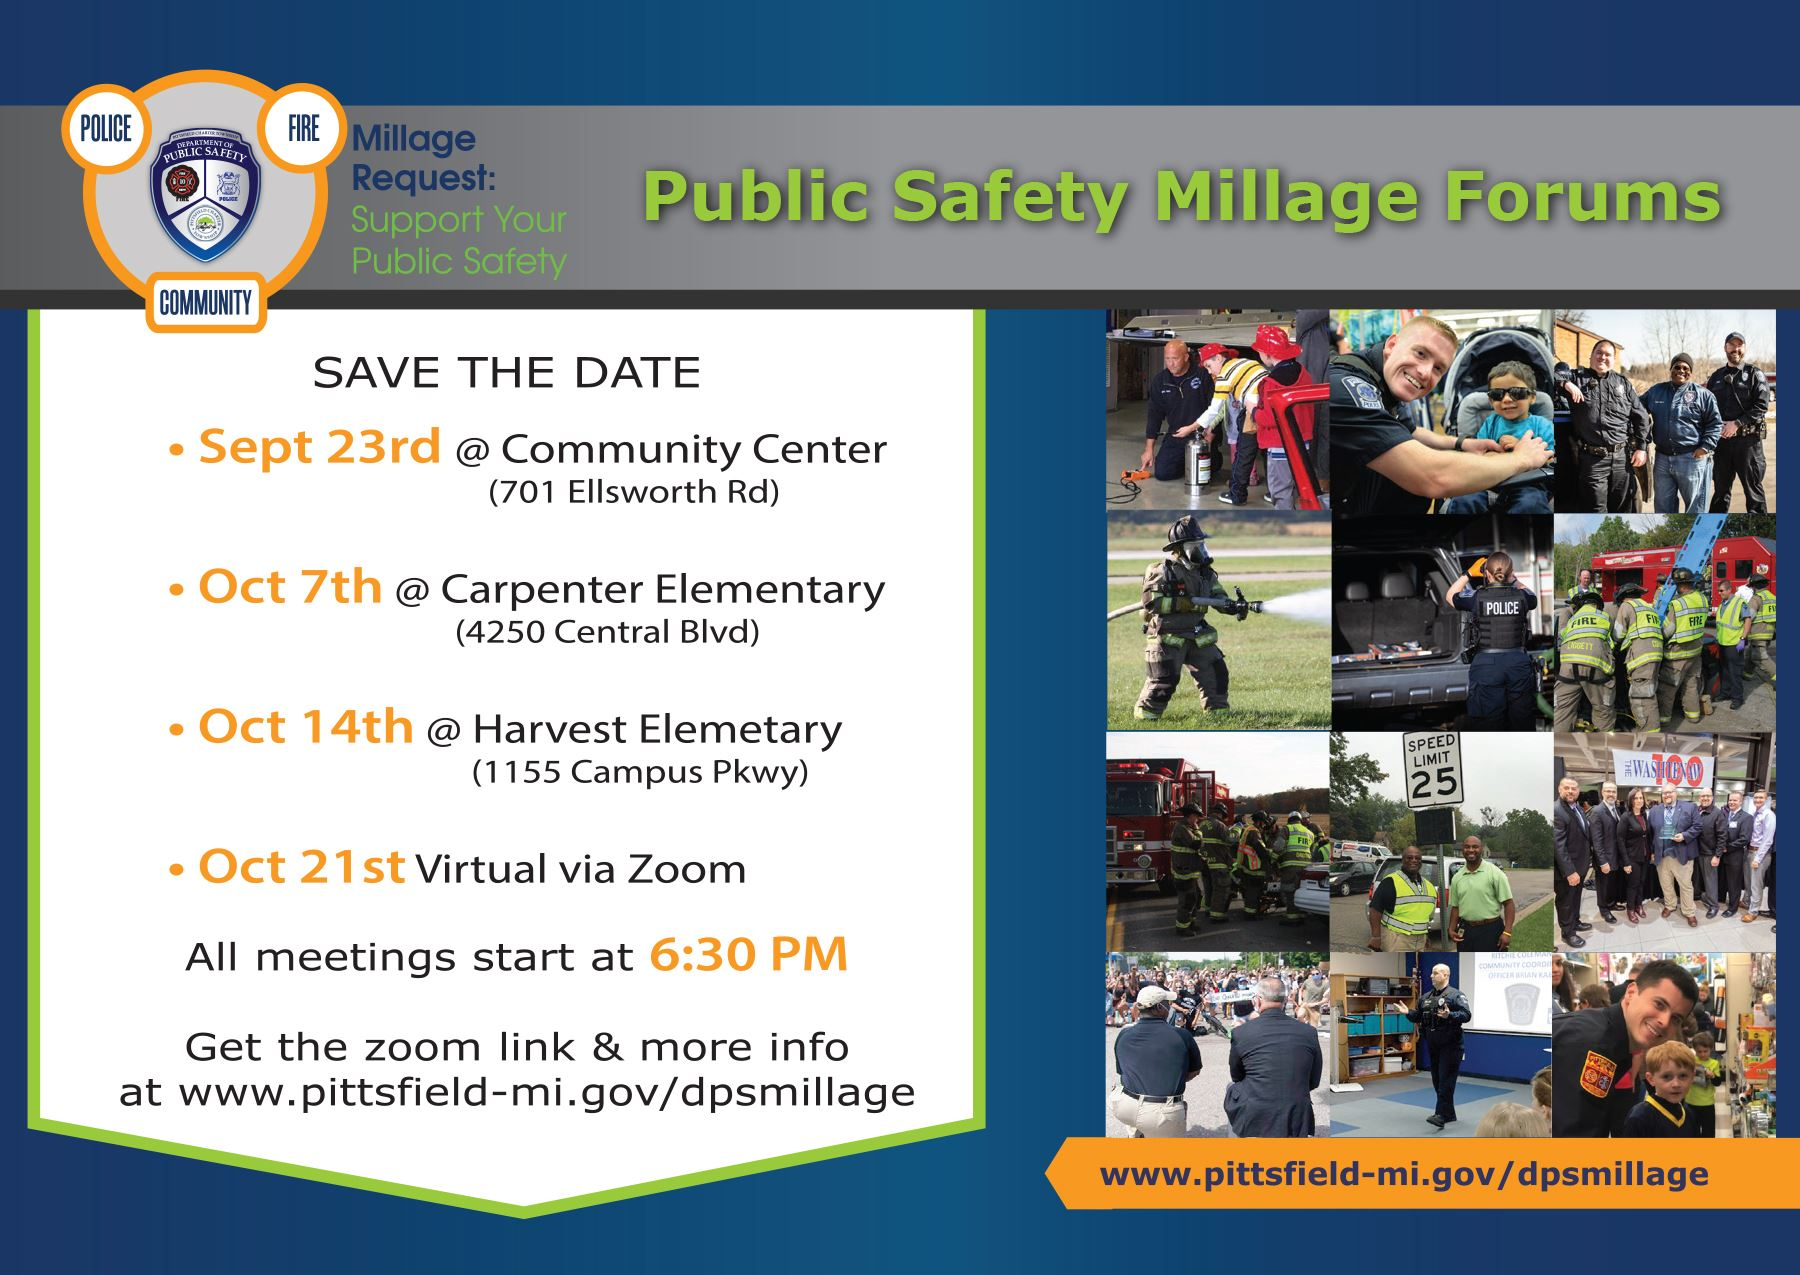 Public Safety Millage Forums Postcard Opens in new window